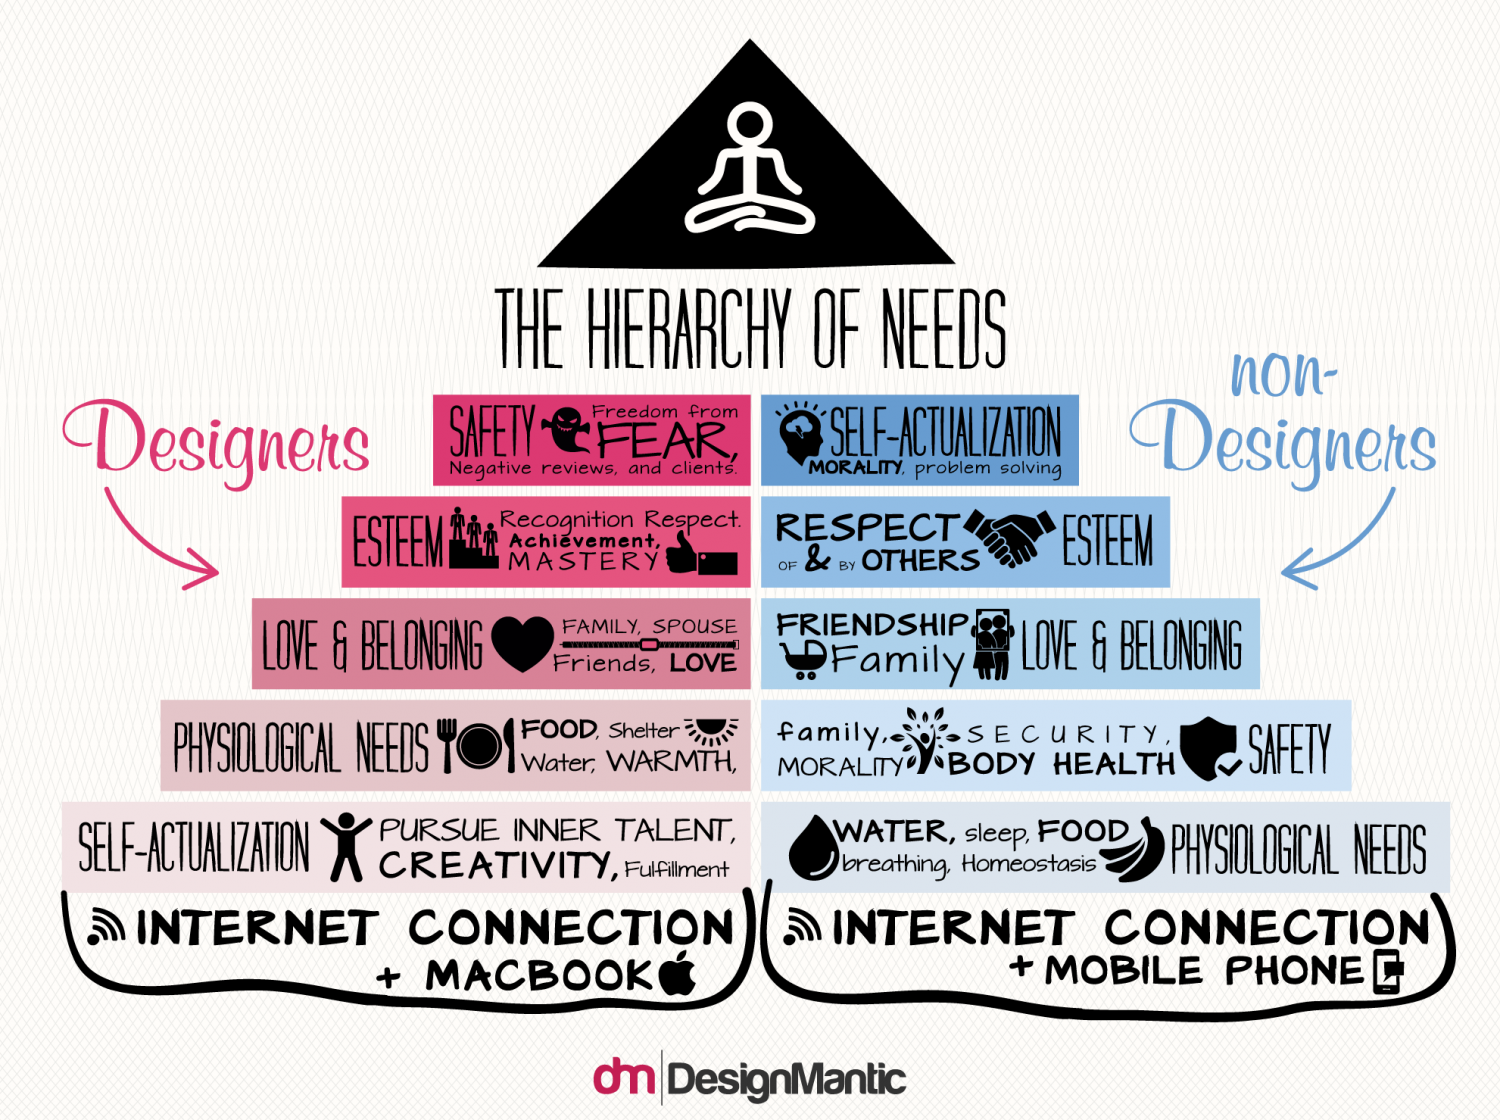 The Hierarchy Of Needs : Designers Vs. Non-Designers! Infographic